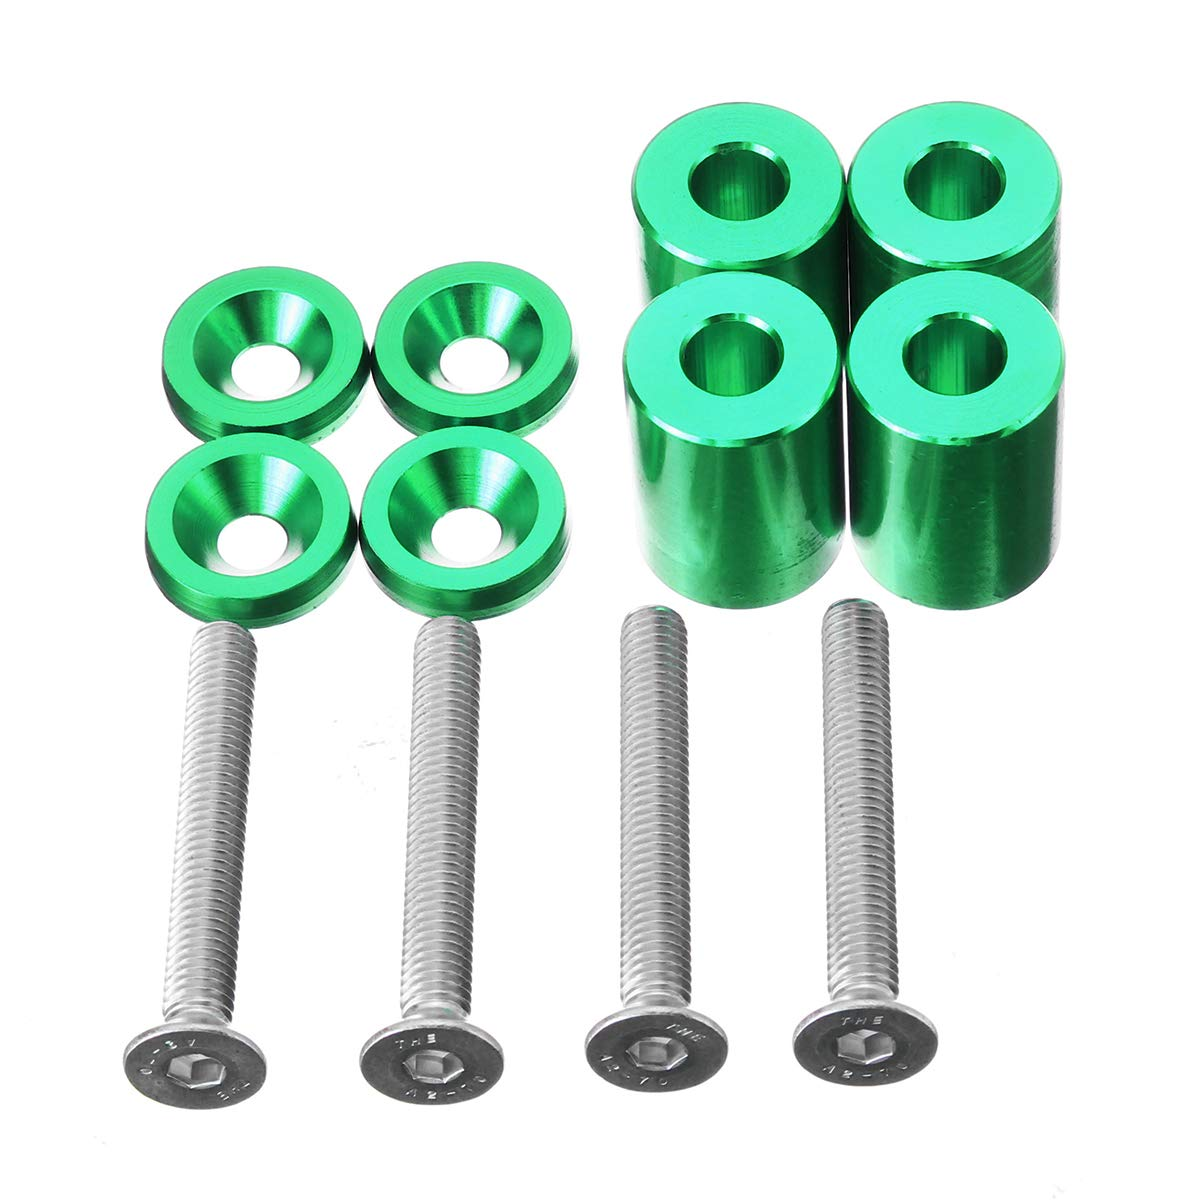 Verde Viviance 6Mm Racing 1Inch Billet Hood Vent Distanziale Kit Riser per Auto Motore Turbo Motor Engine